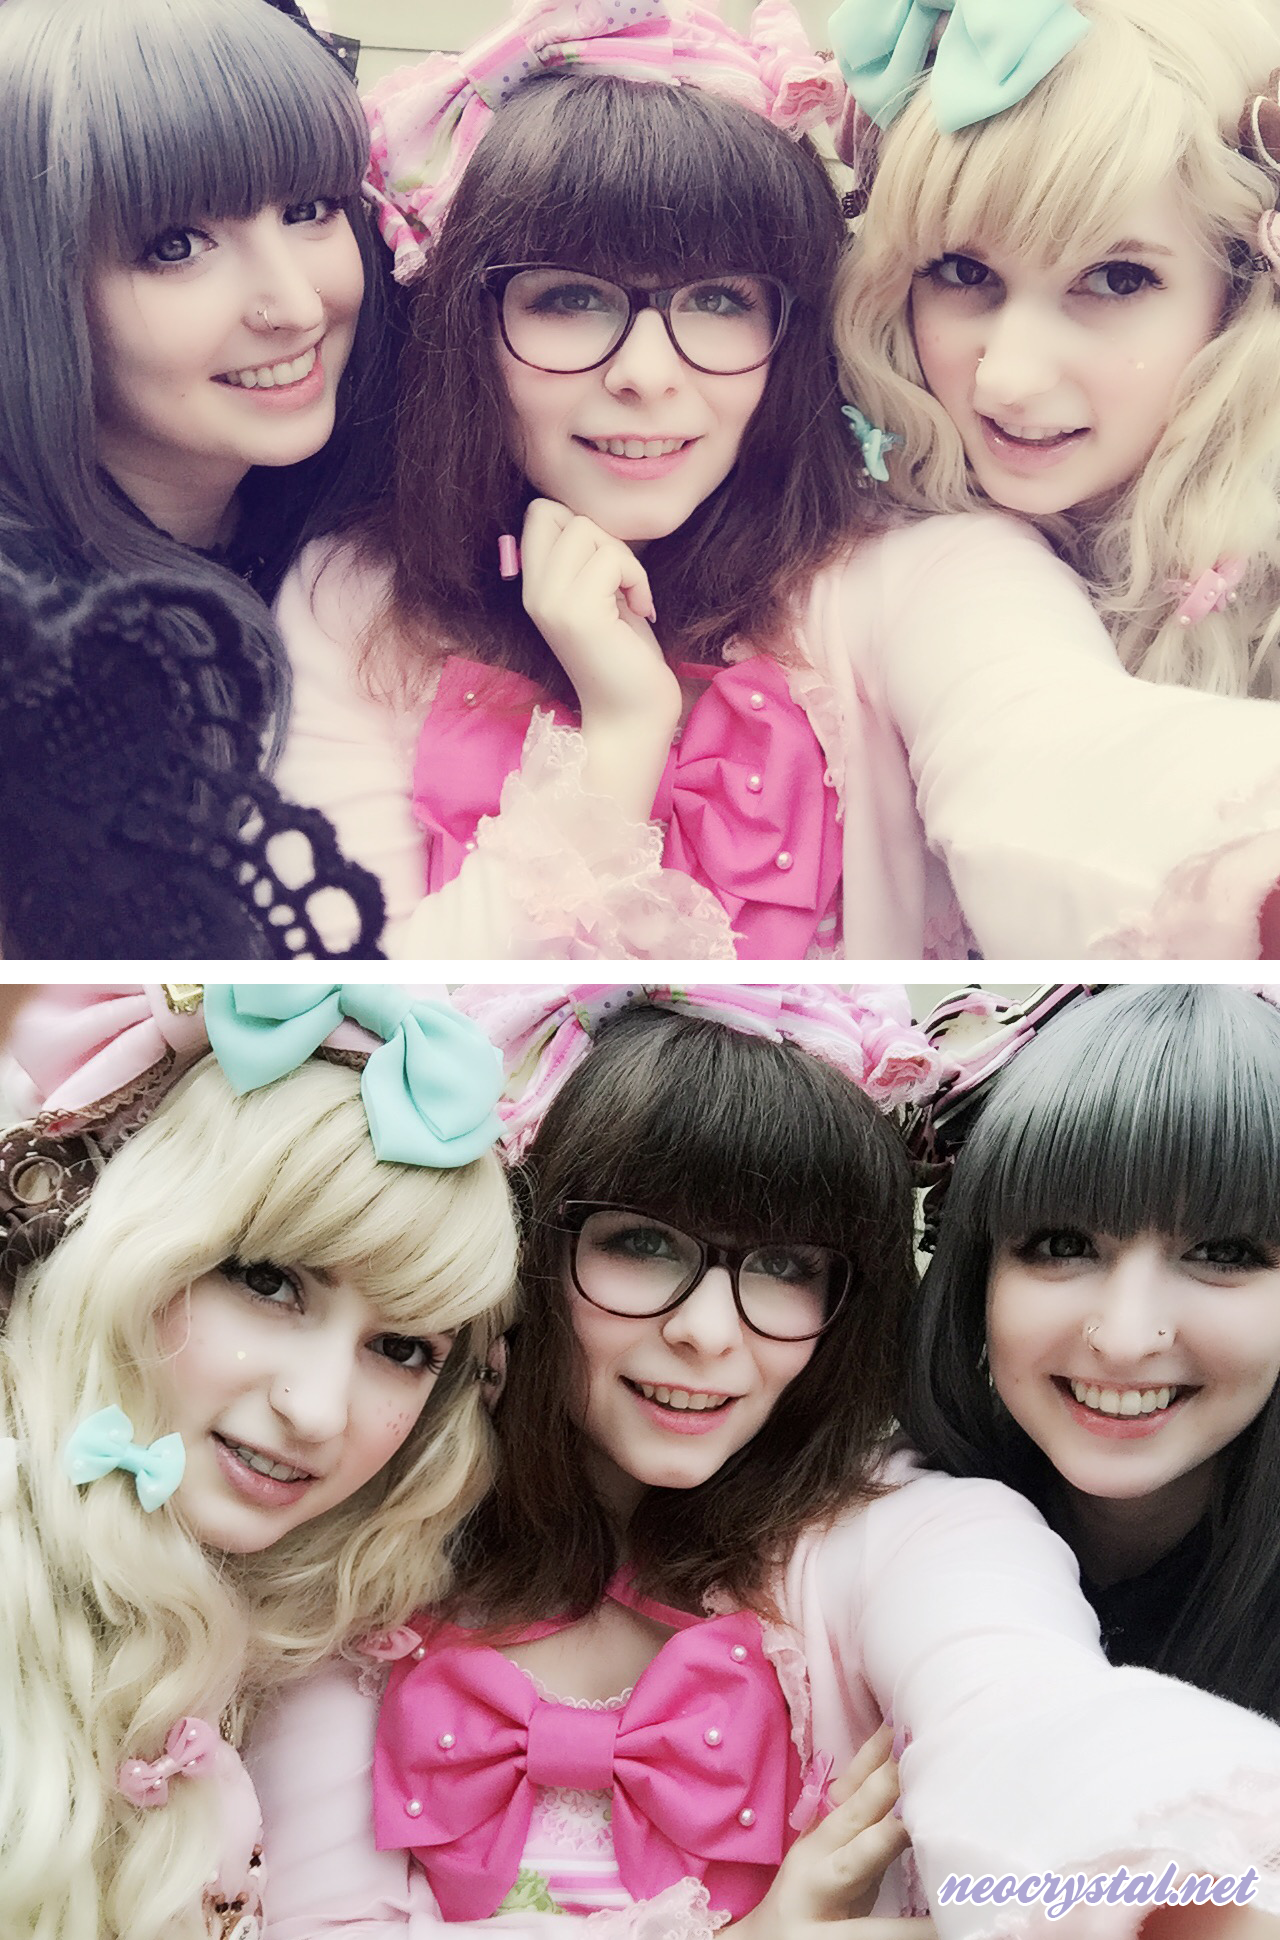 Pdx lolitas taking a selfie